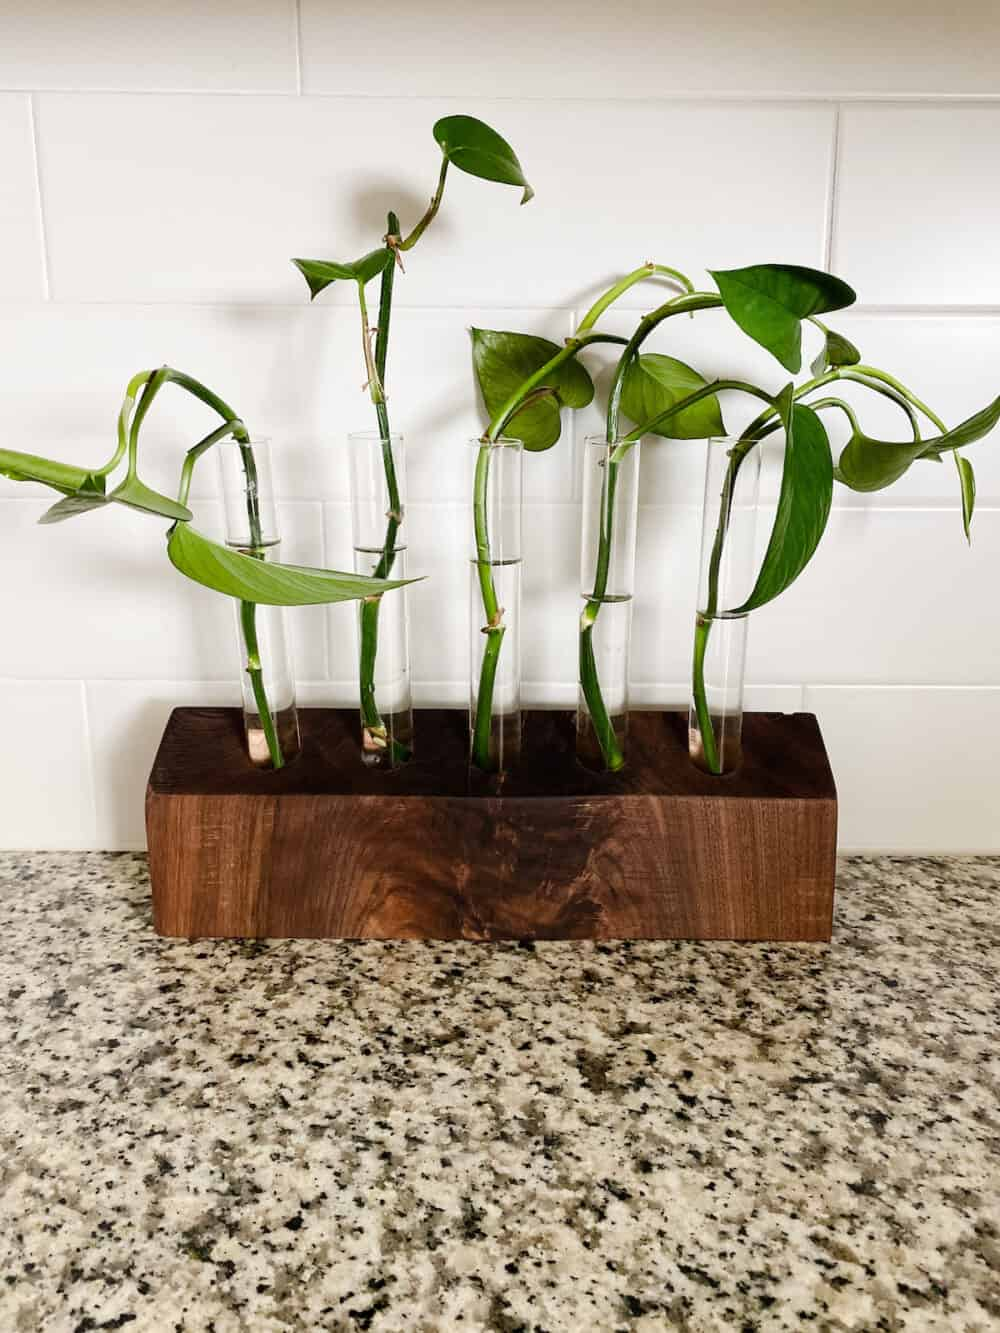 Walnut propagation station with pothos clippings in it